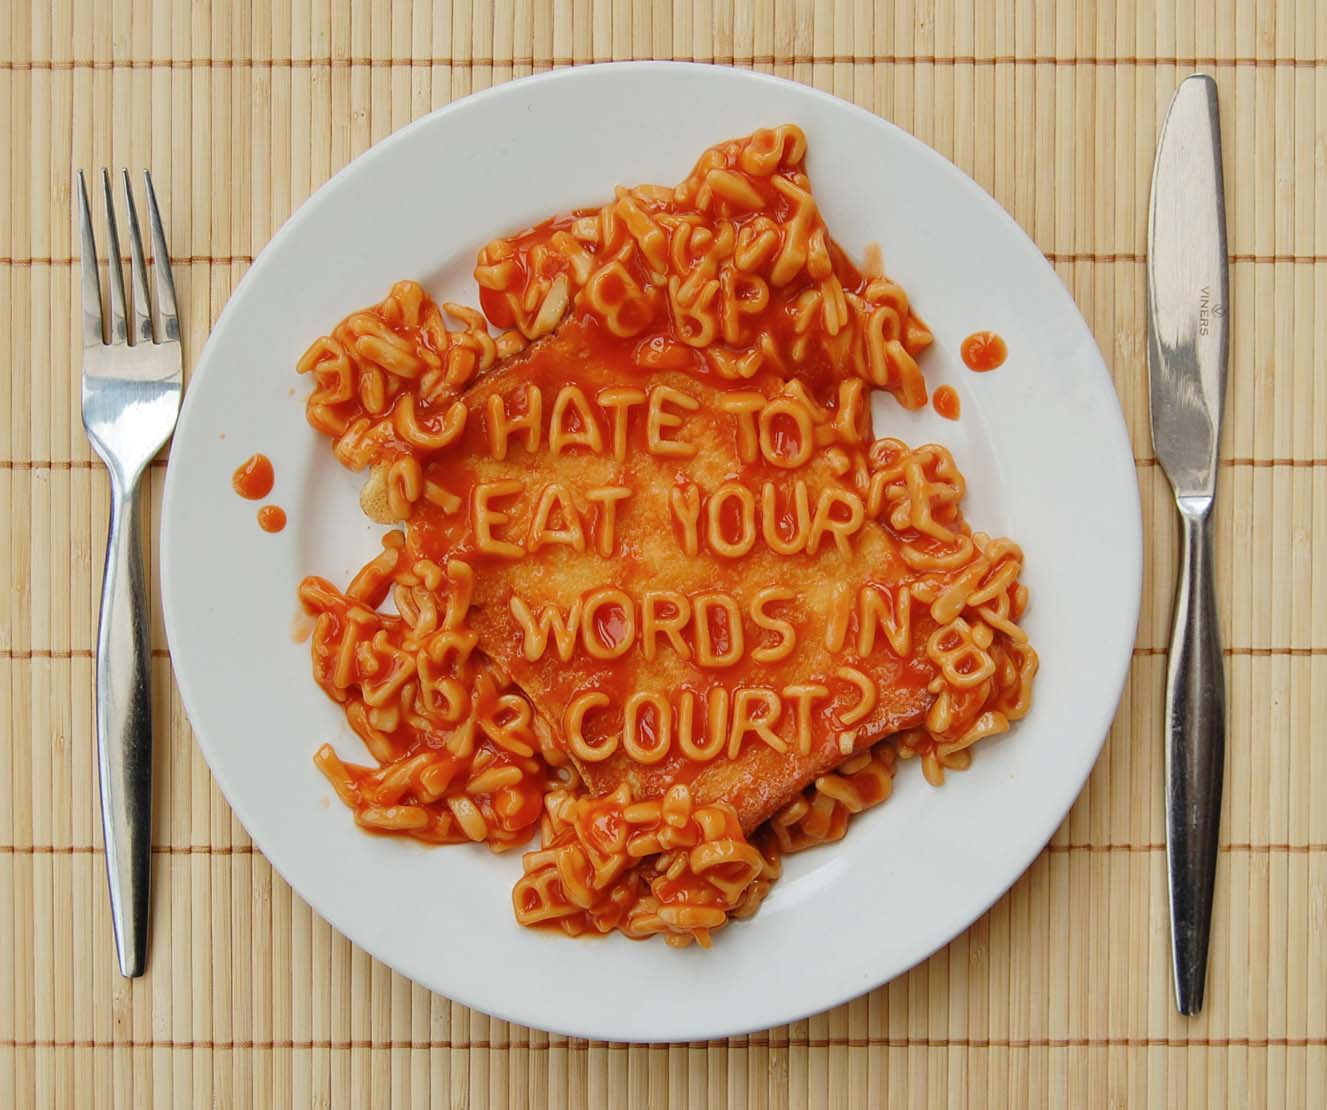 Hate to eat your words in court?